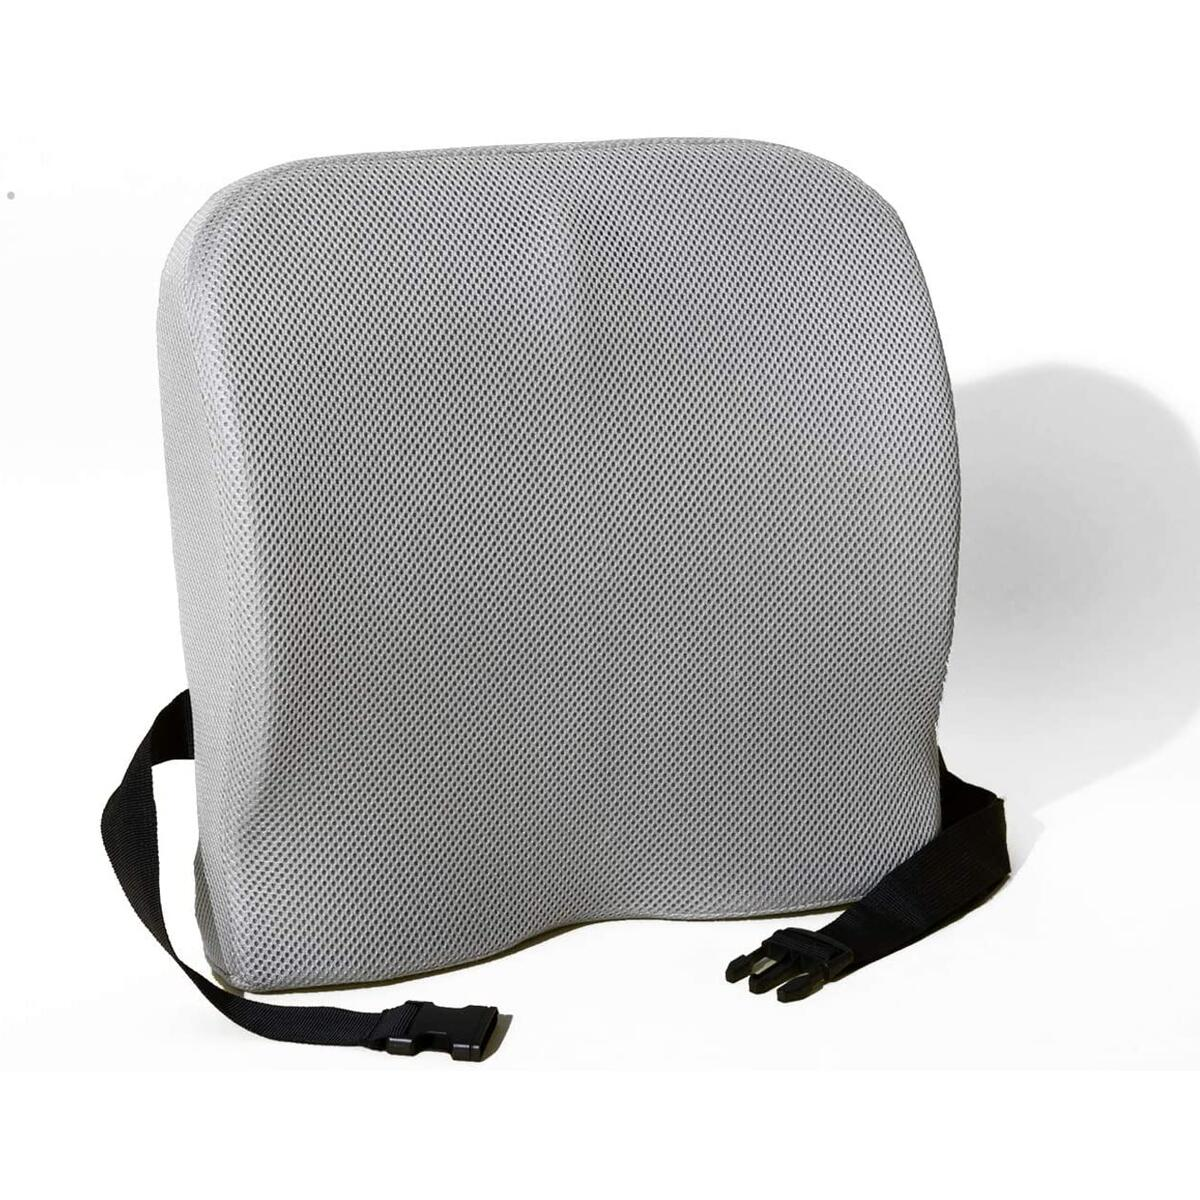 Cozy&Comfort Lumbar Support Pillow for Office Chair